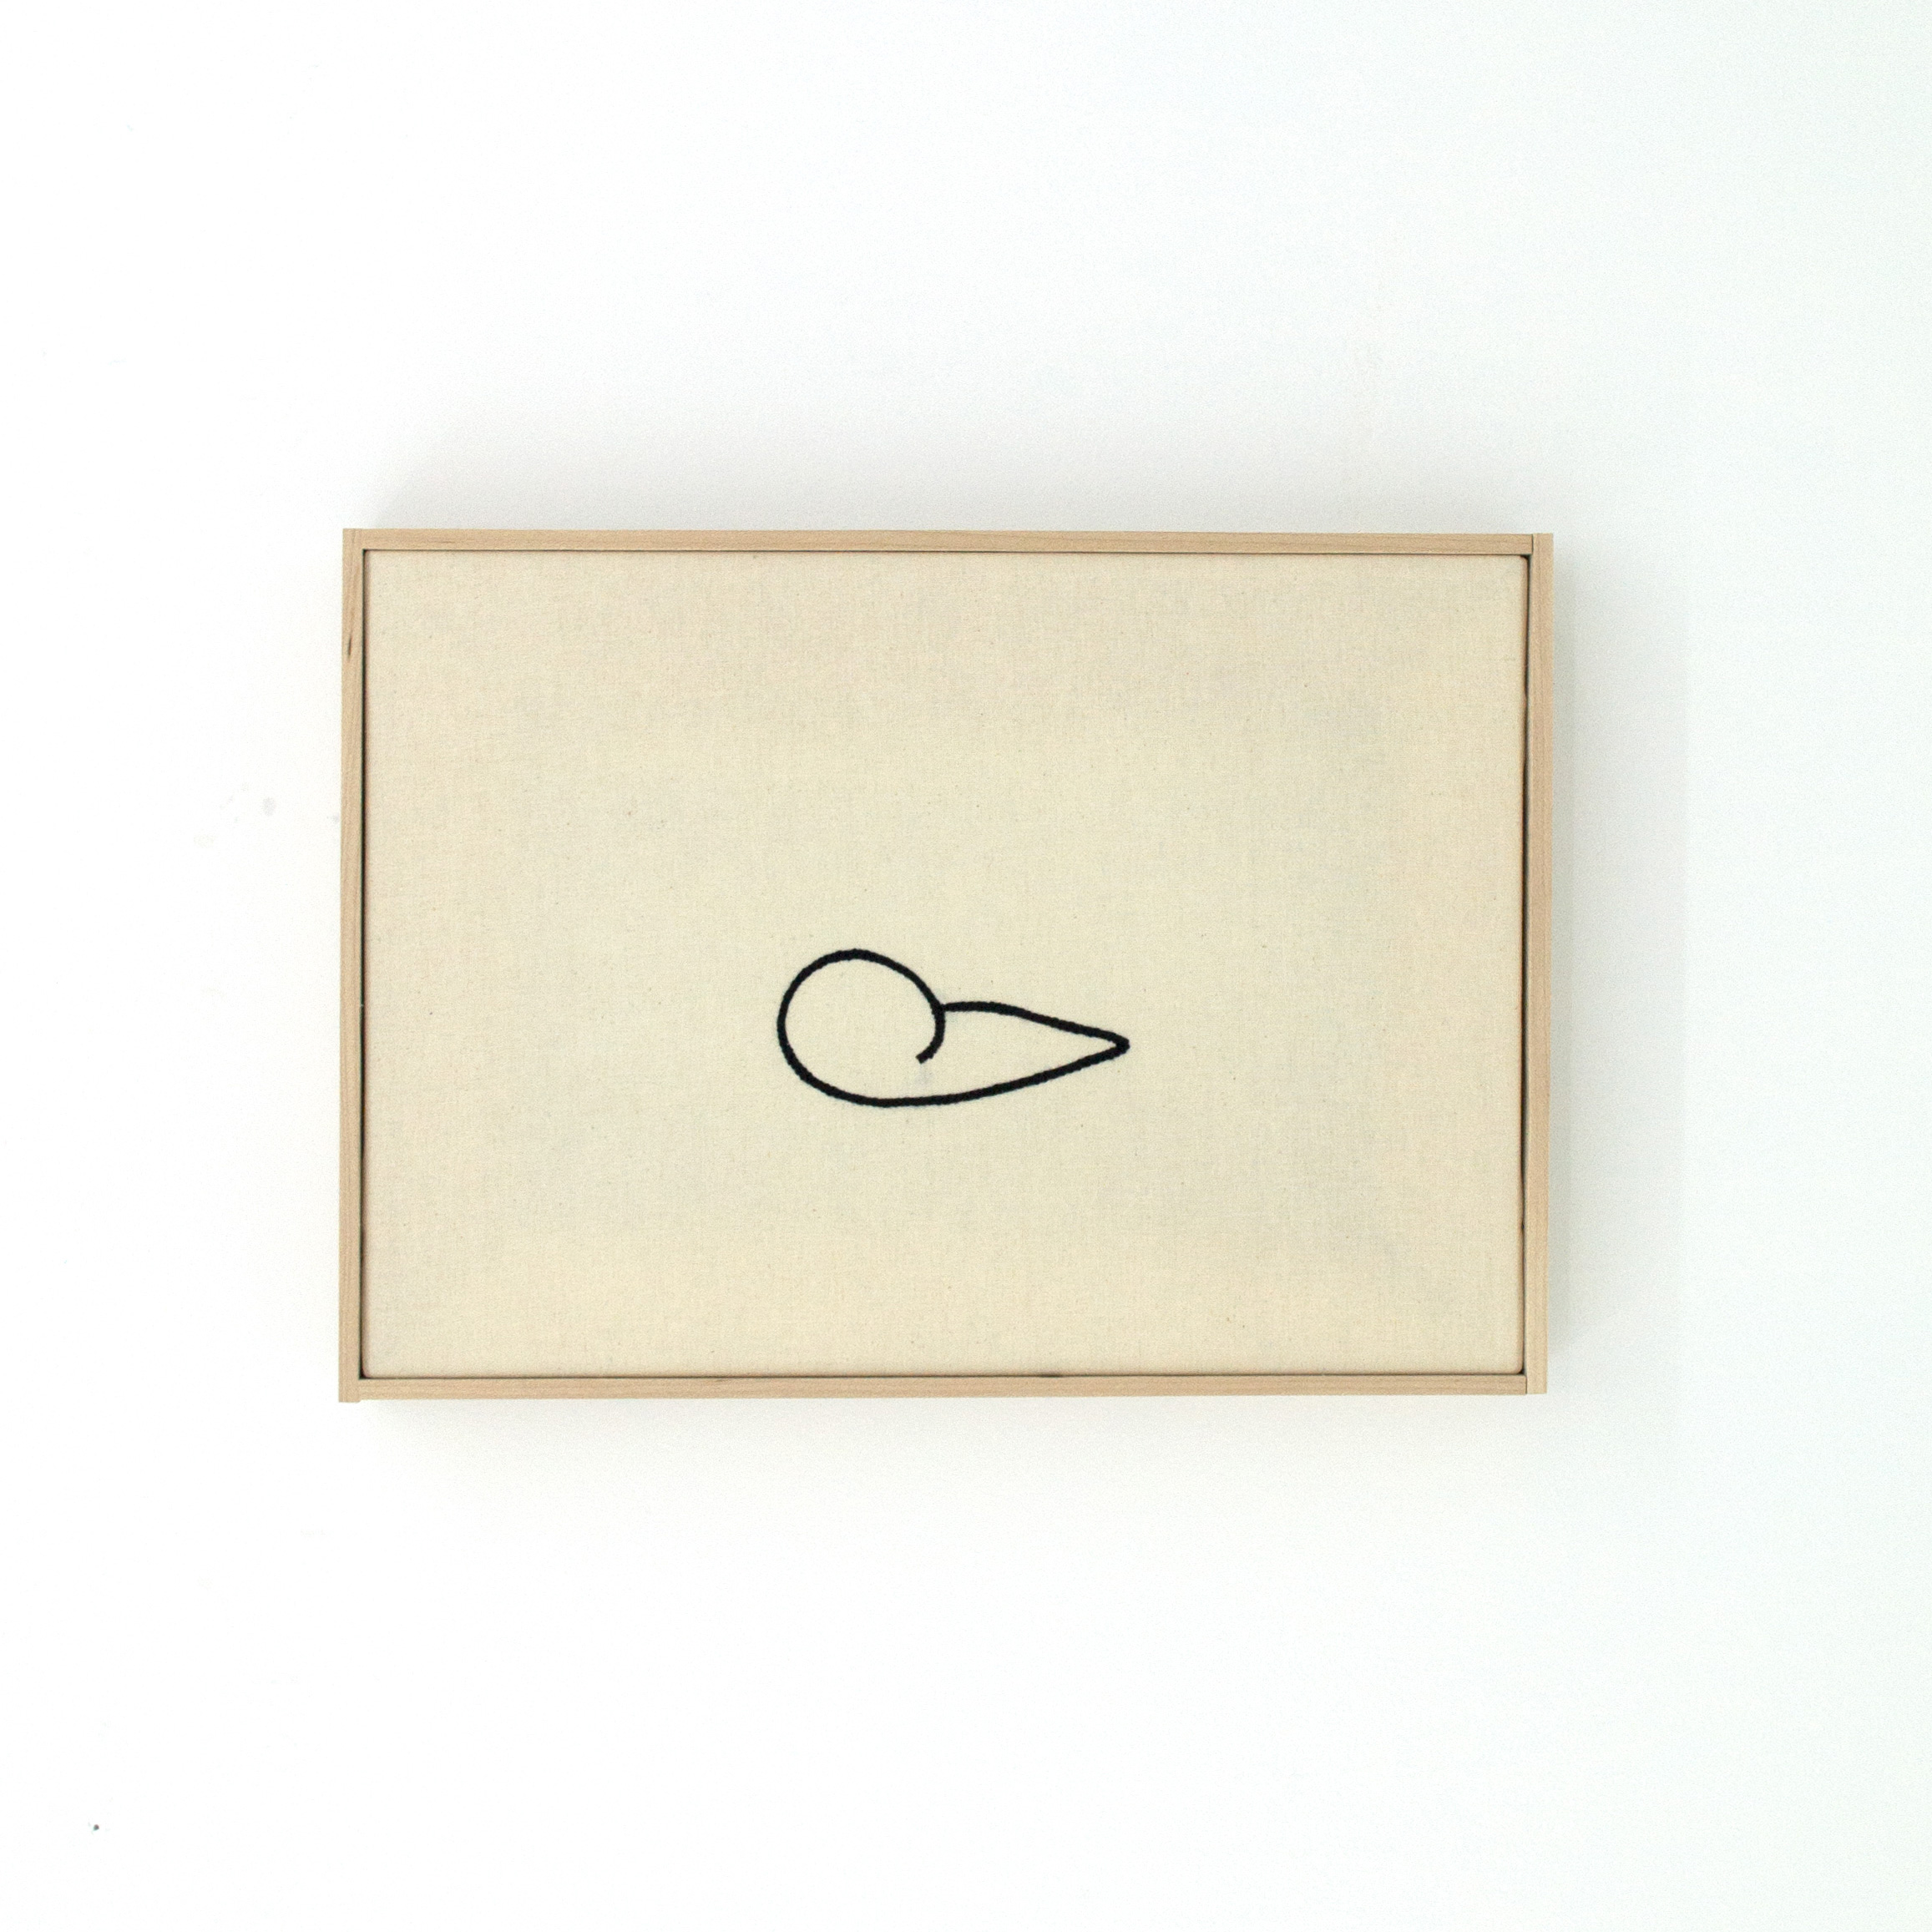 "Tlajtoa (Speak), Carlos Colín, Embroidery on unbleached cotton with wooden frame, 14.5"" x 10.5"", $800"